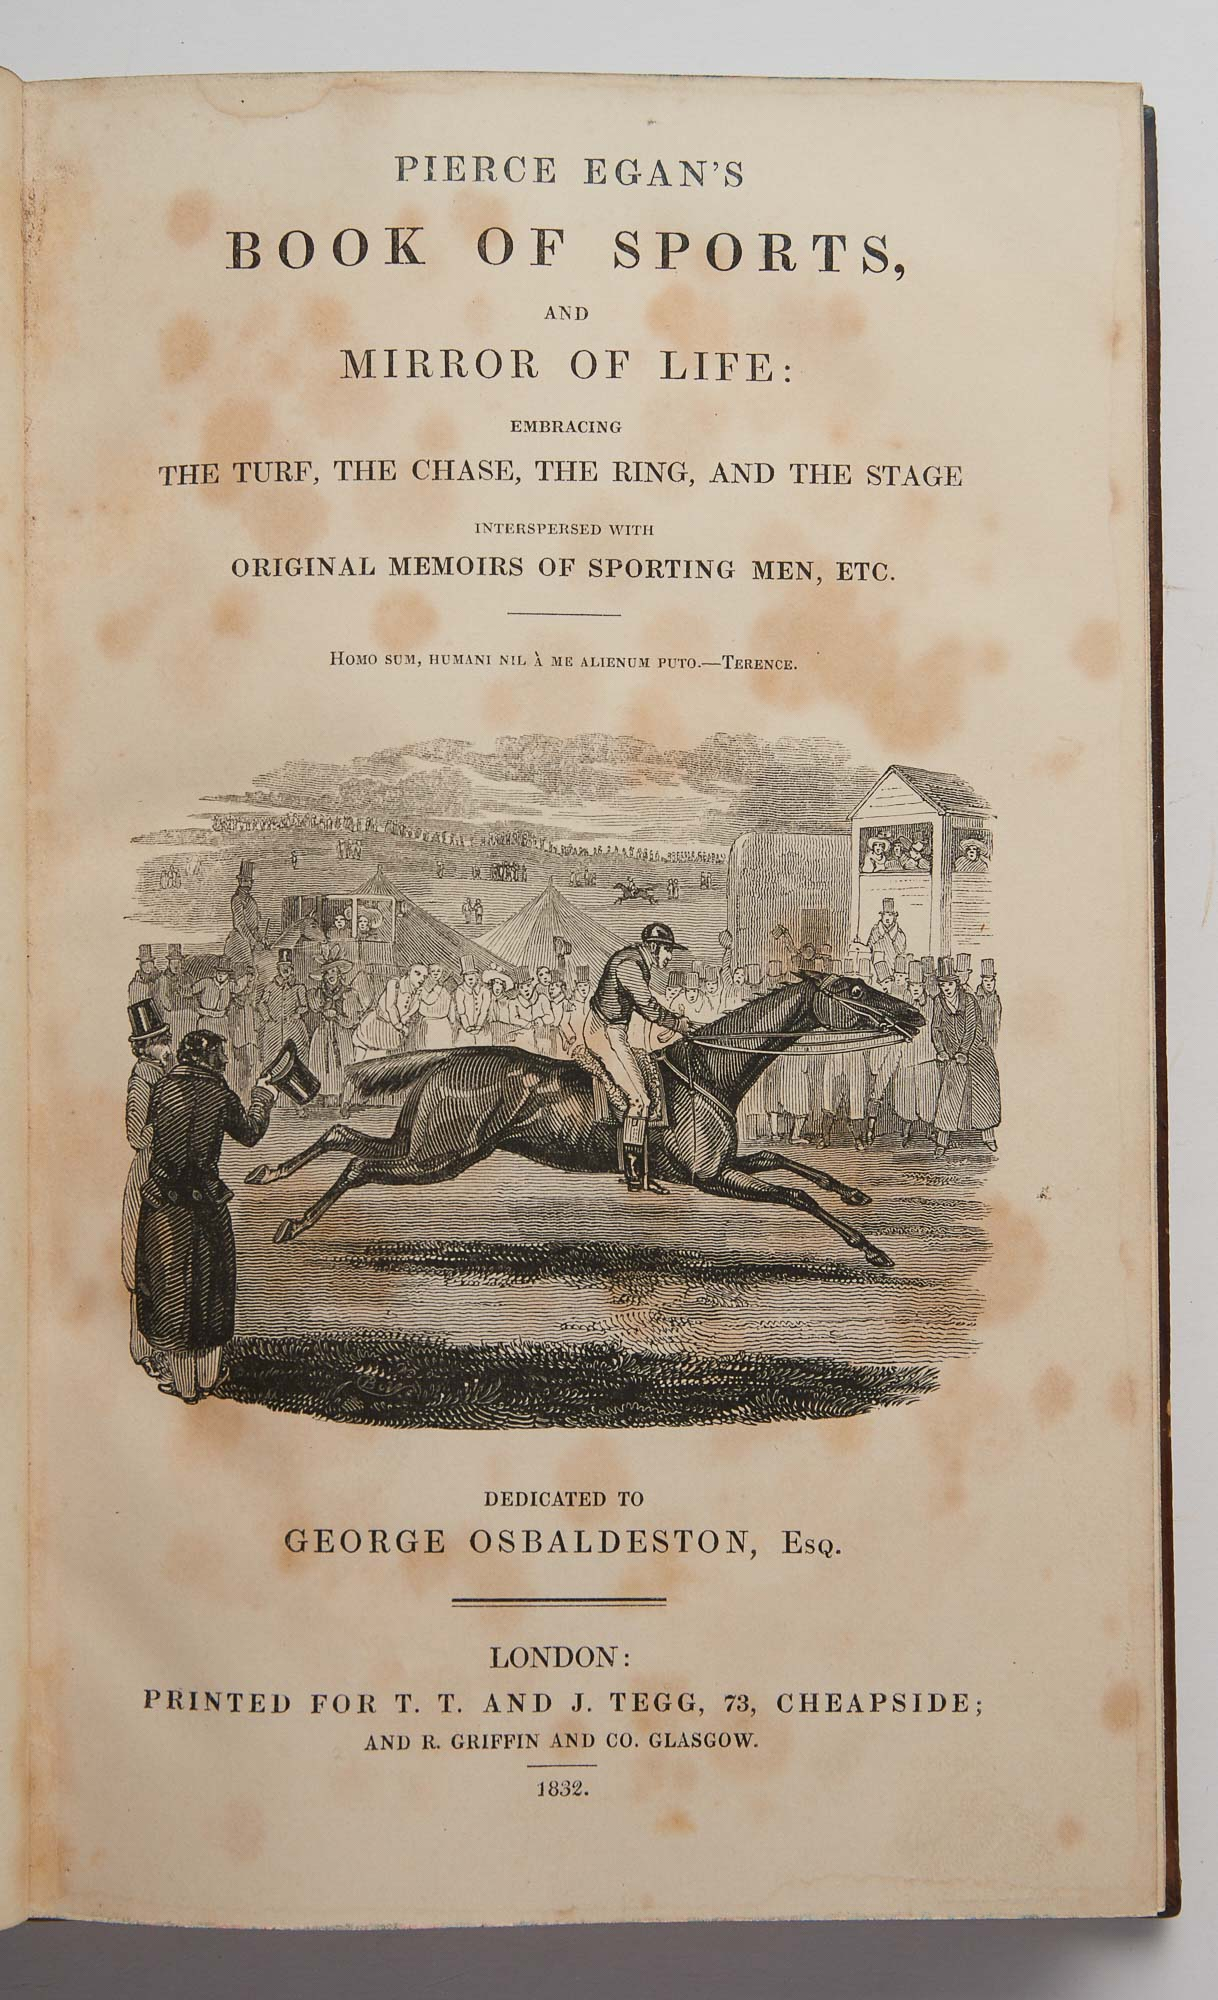 Lot image - [DUKE OF GLOUCESTER COPY]  EGAN, PIERCE  Book of Sports and Mirror of Life: the turf, the chase, the ring, and the stage interspersed with original memoirs of sporting men, etc.